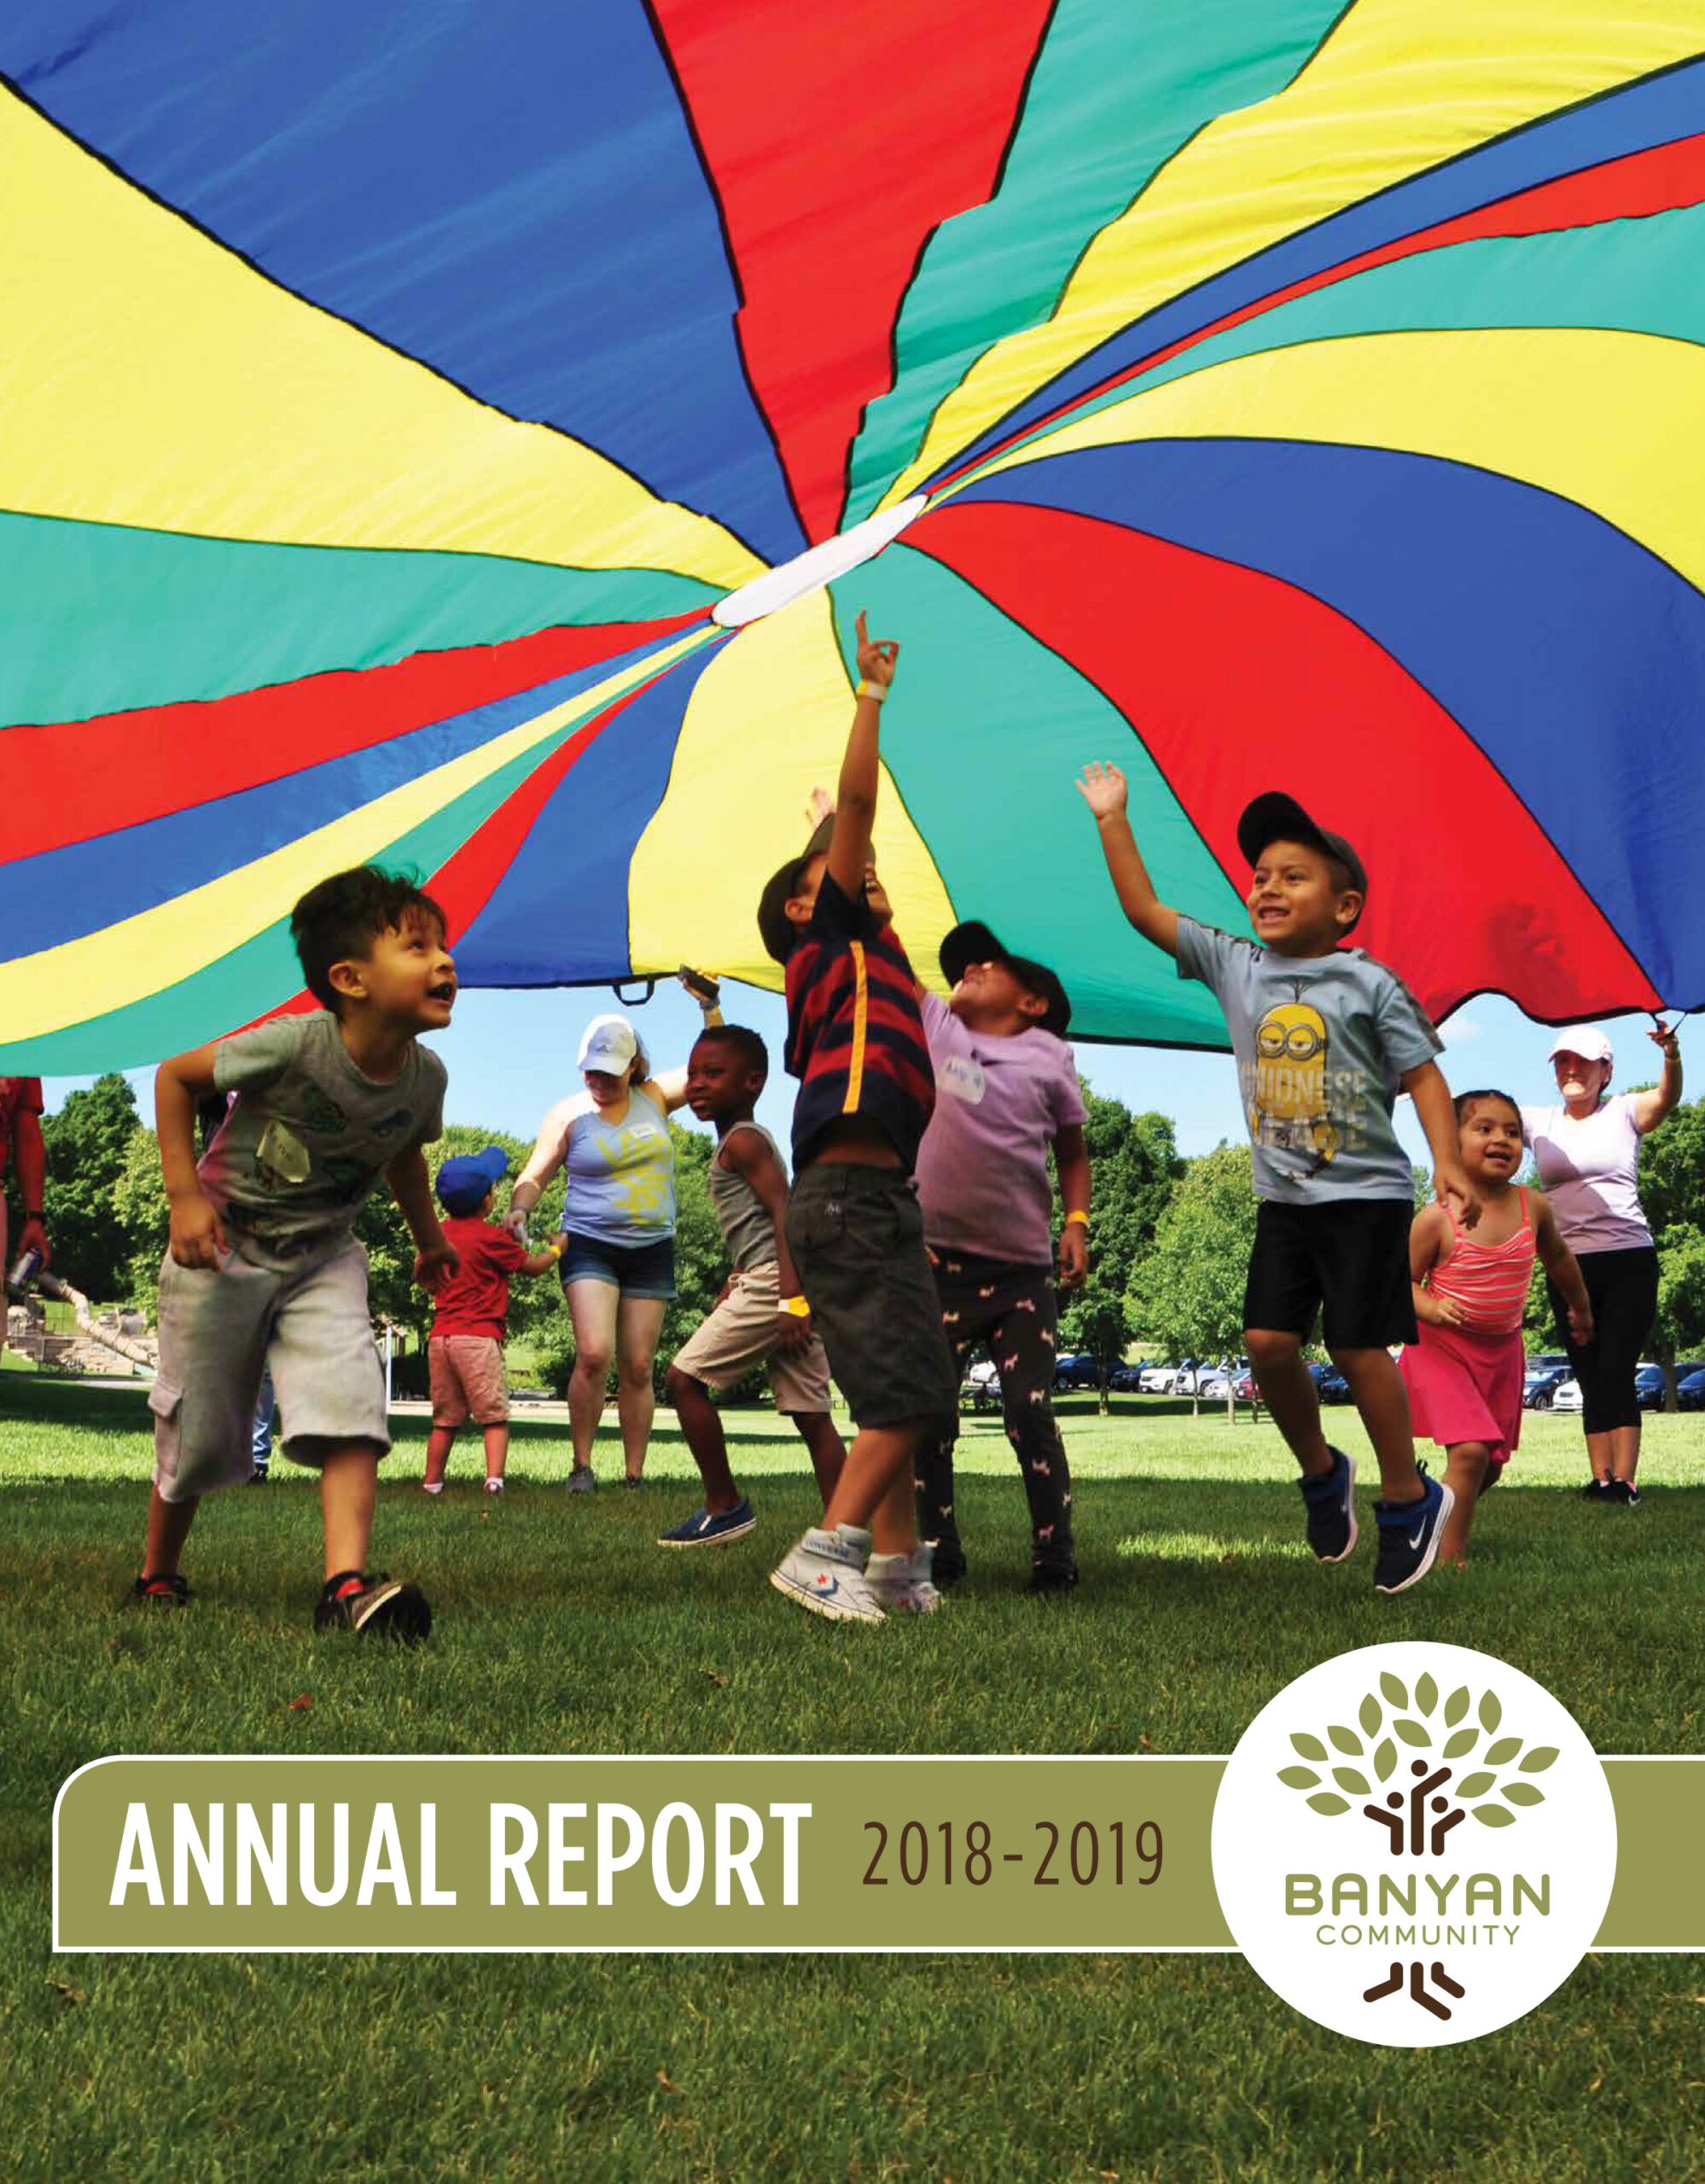 Banyan Community's 2018-2019 annual report cover